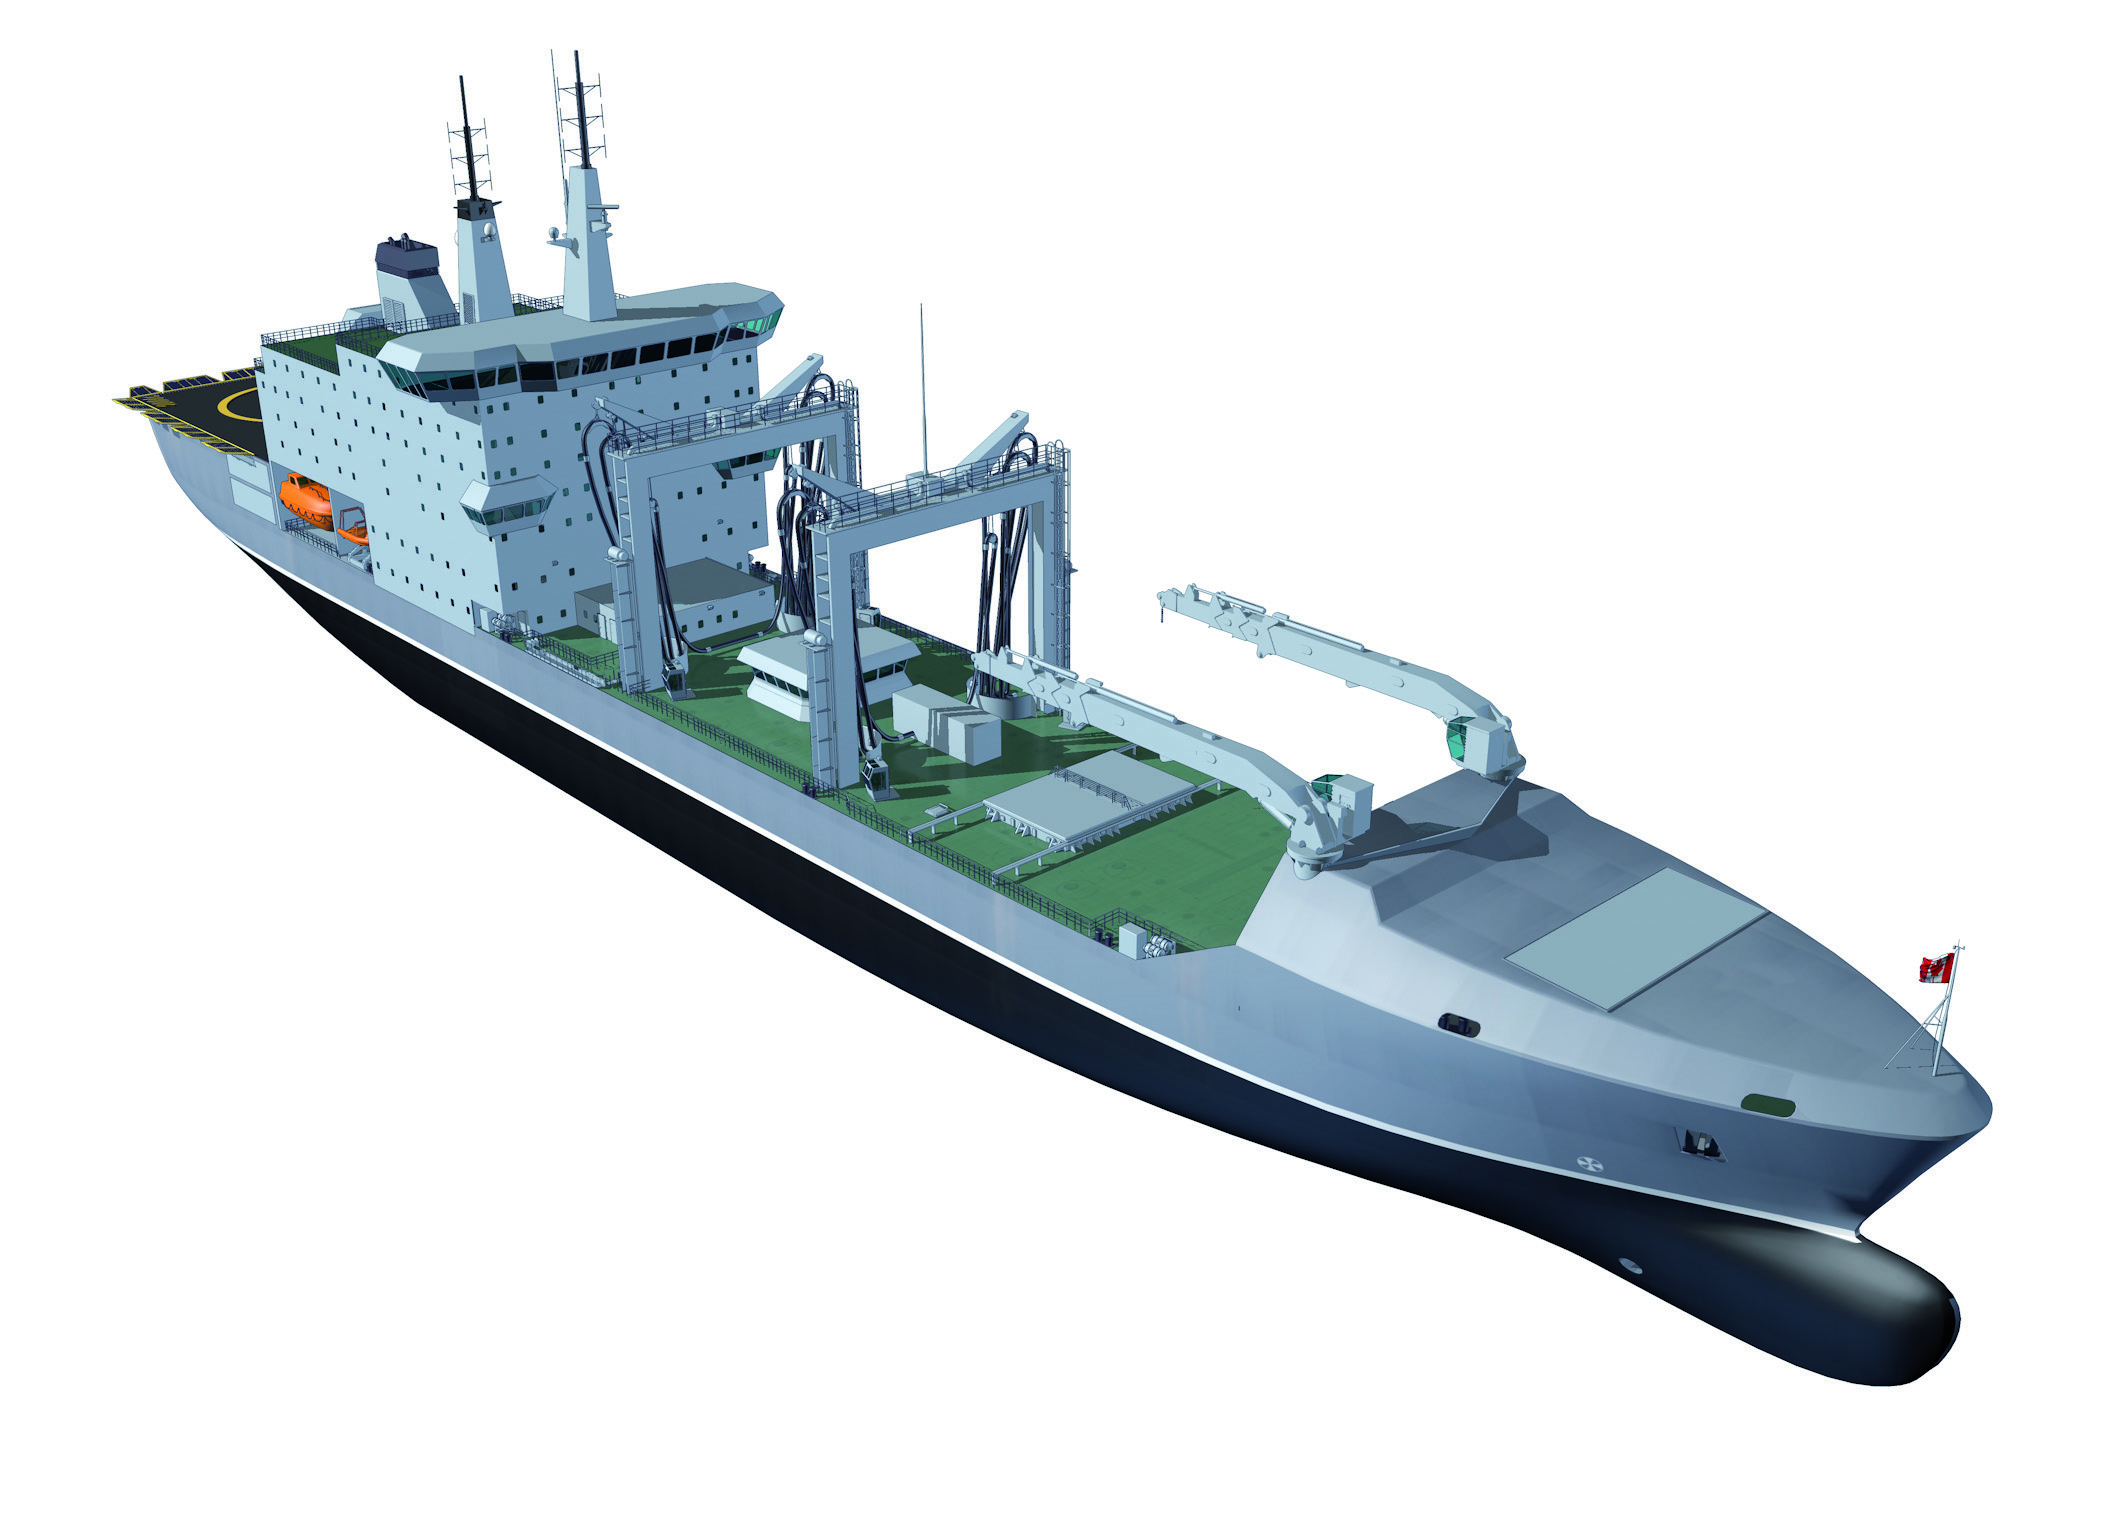 After it's converted, the Asterix will be able to accomodate a crew of 200 and land helicopters on its deck. The commercial container space will be converted into fuel tanks so the ship can resupply the fuel needs of Canadian ships on deployment. It will also deliver food and water, spare parts and any other supplies needed. (Davie)